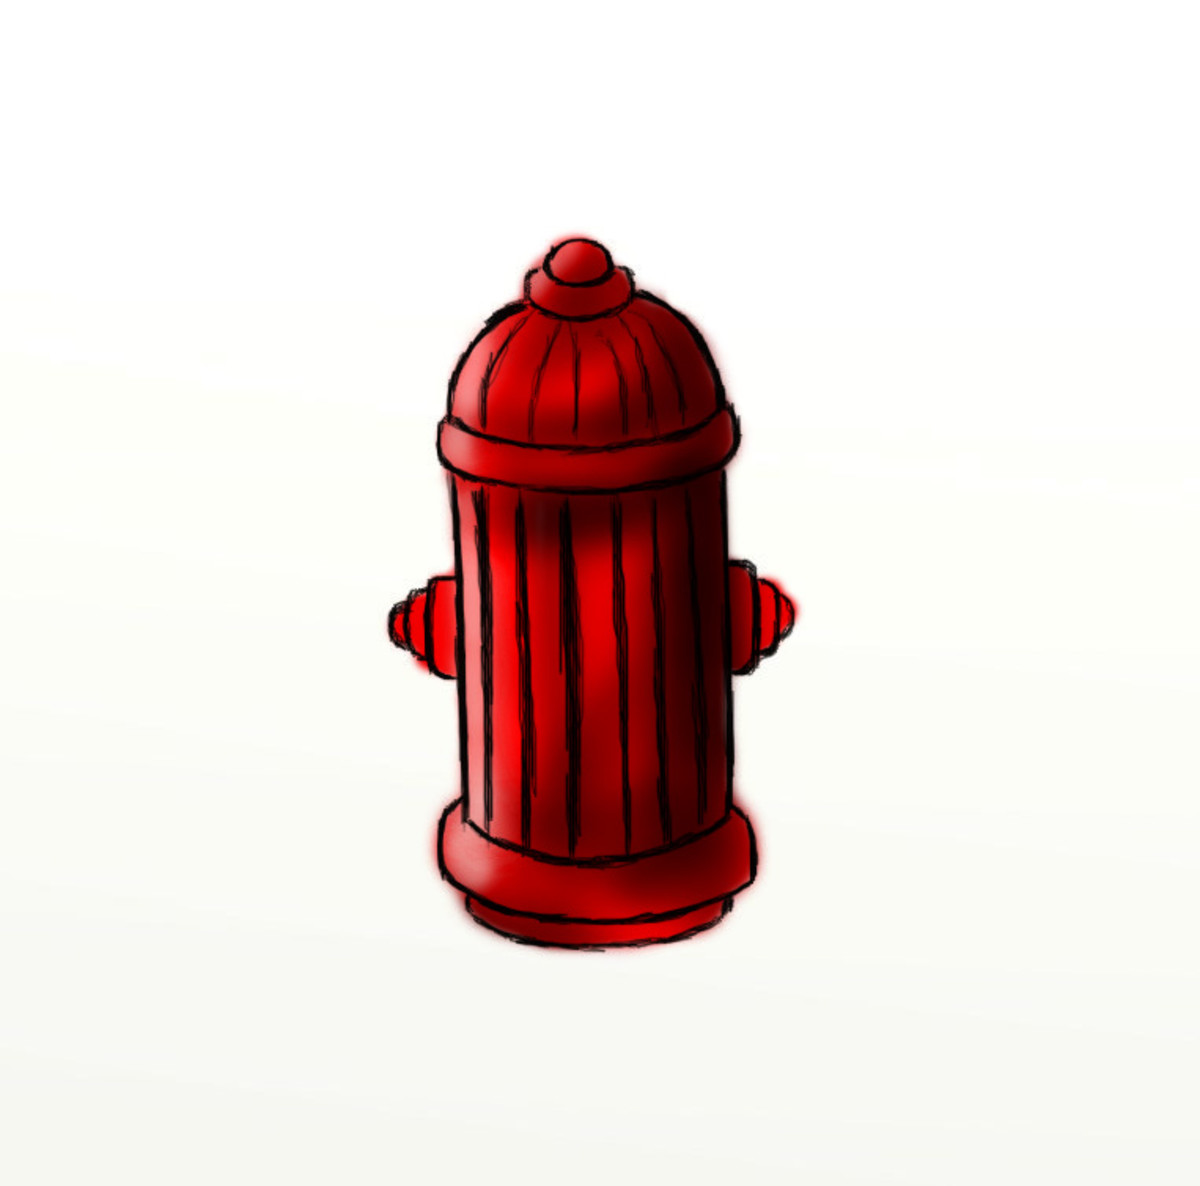 how-to-draw-a-fire-hydrant